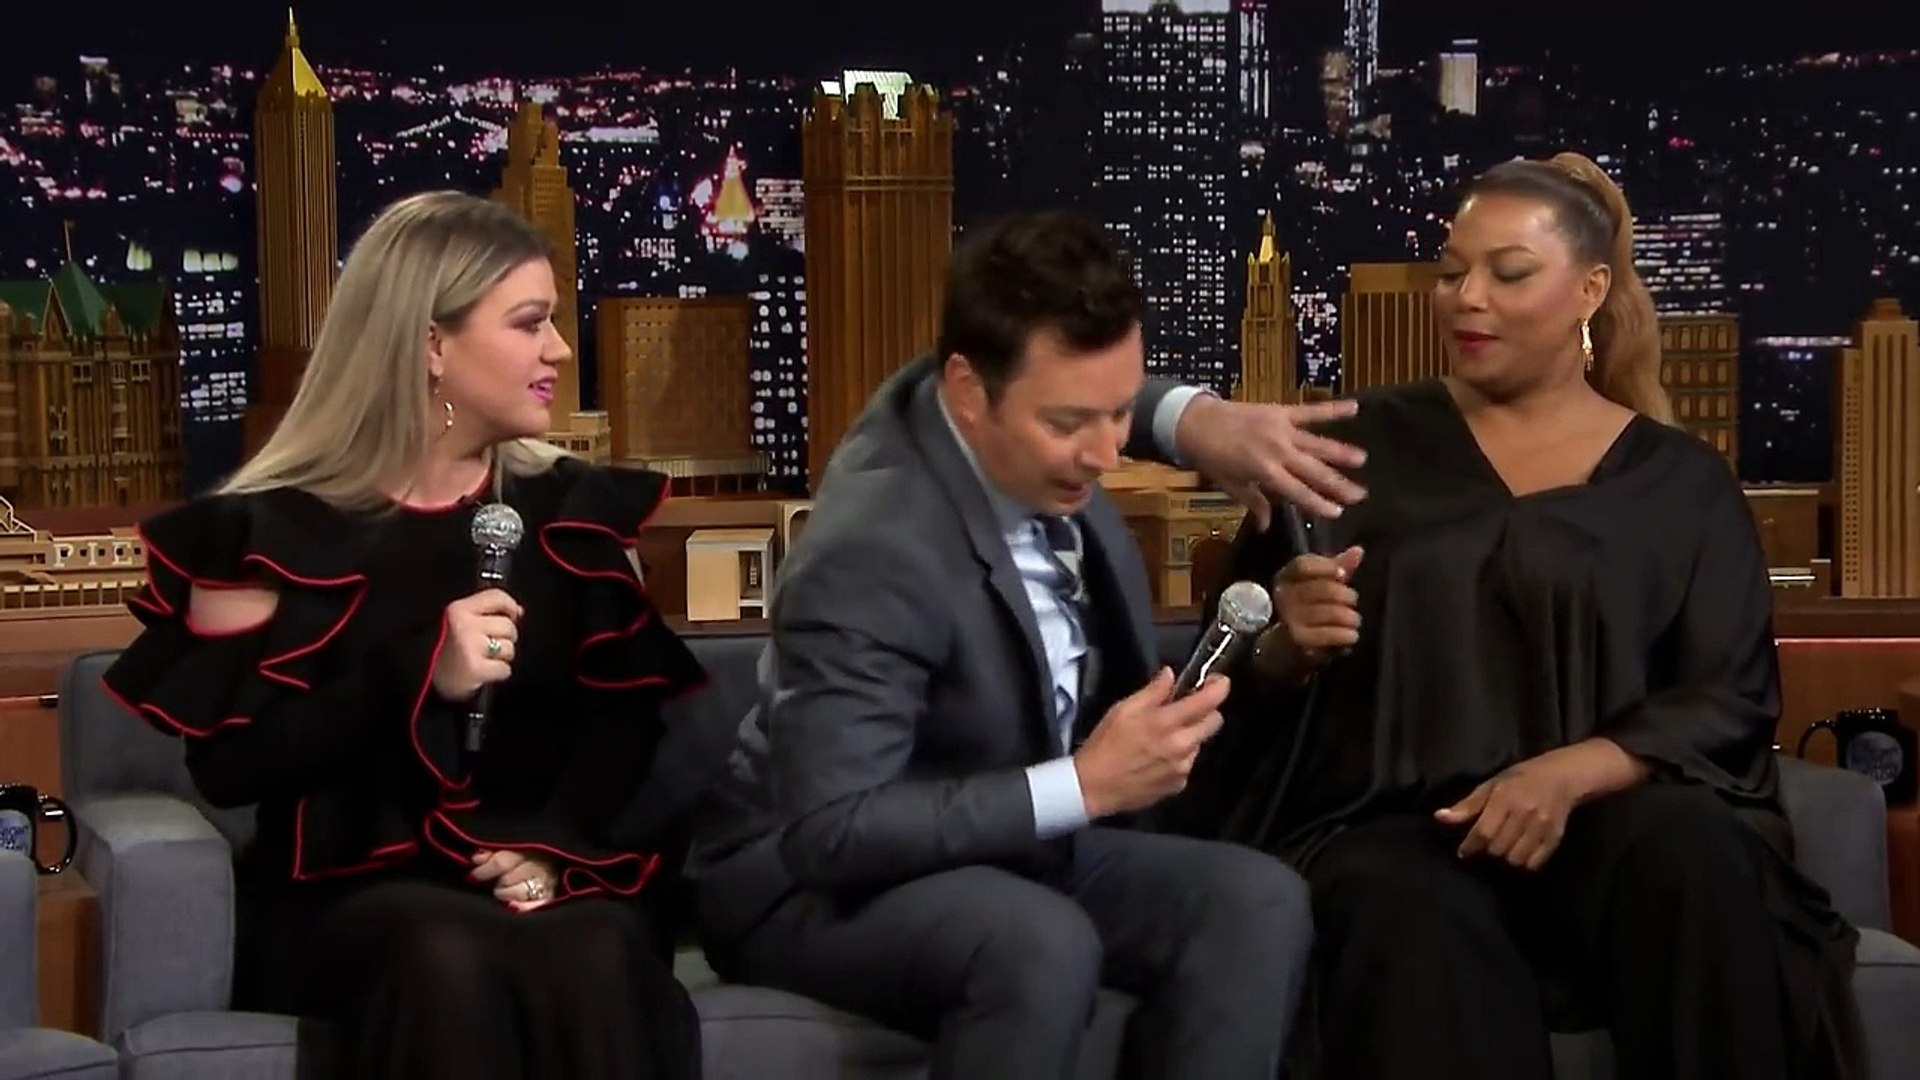 Alle Filme Mit Queen Latifah jimmy, kelly clarkson and queen latifah create a doo-wop song on an ipad